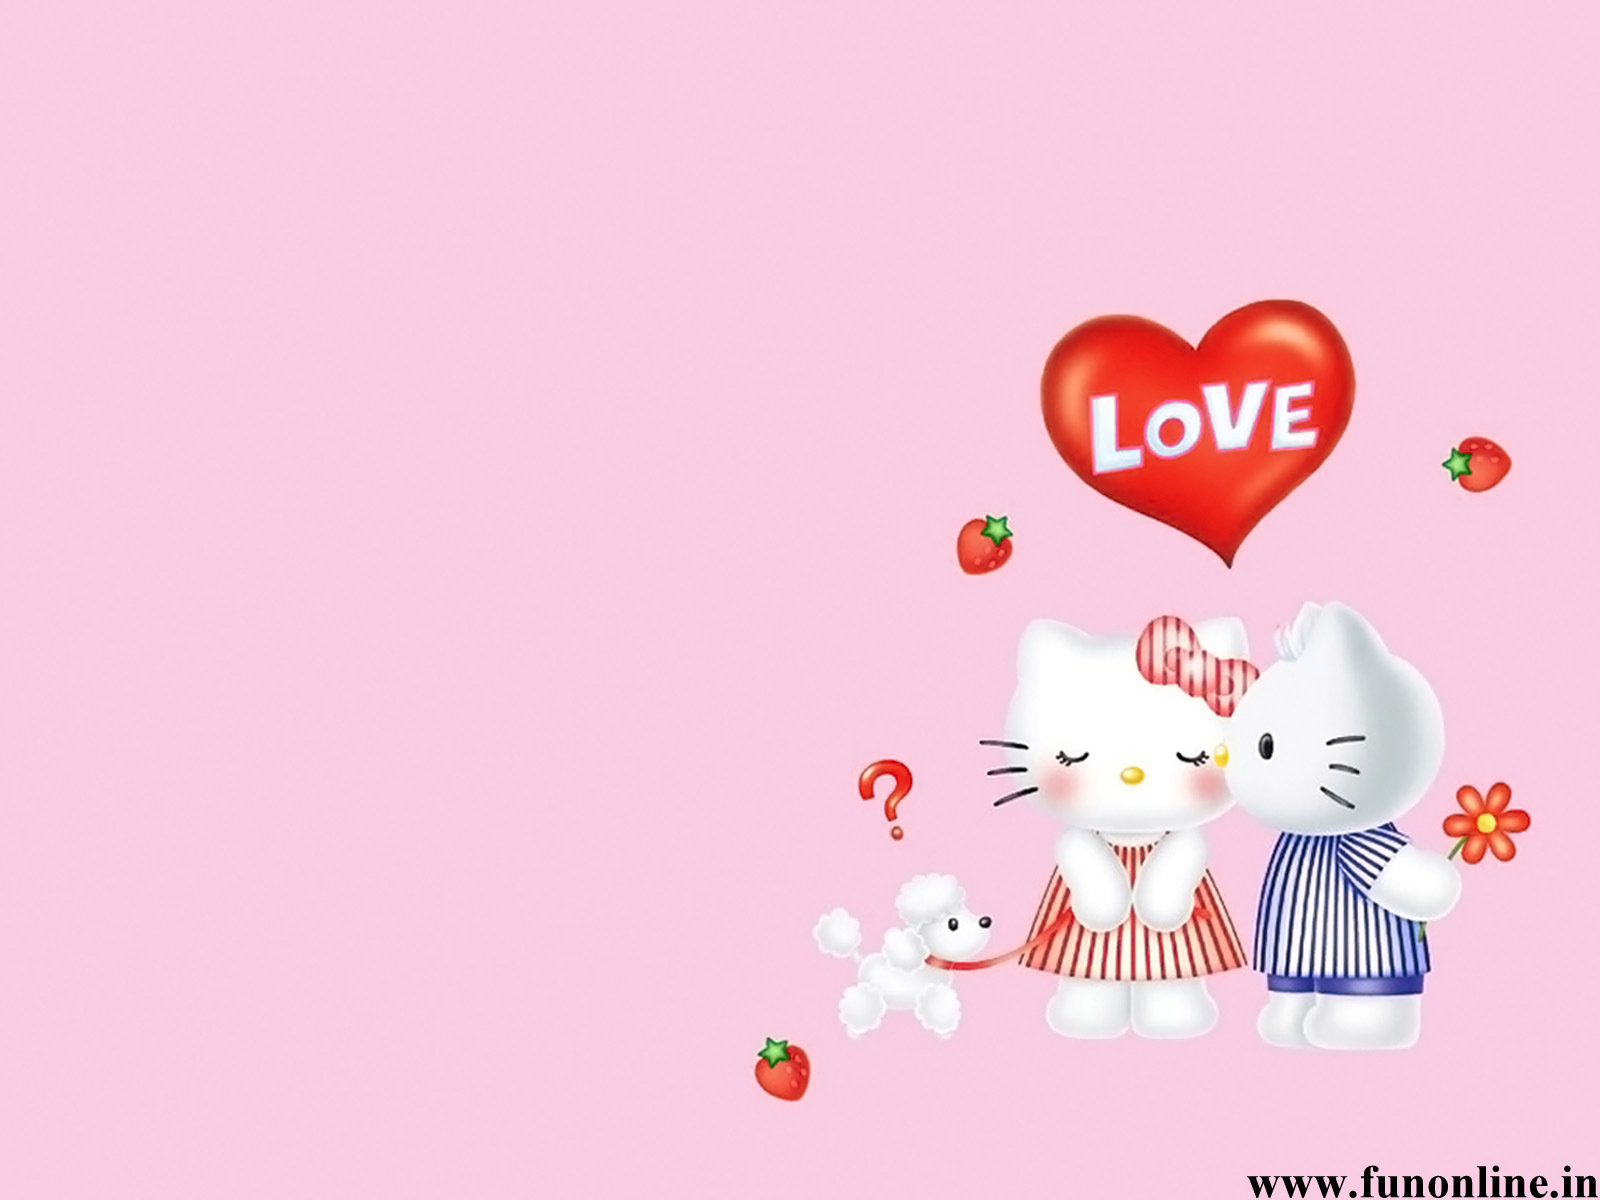 Love cartoon wallpaper wallpapersafari - Love cartoon hd ...